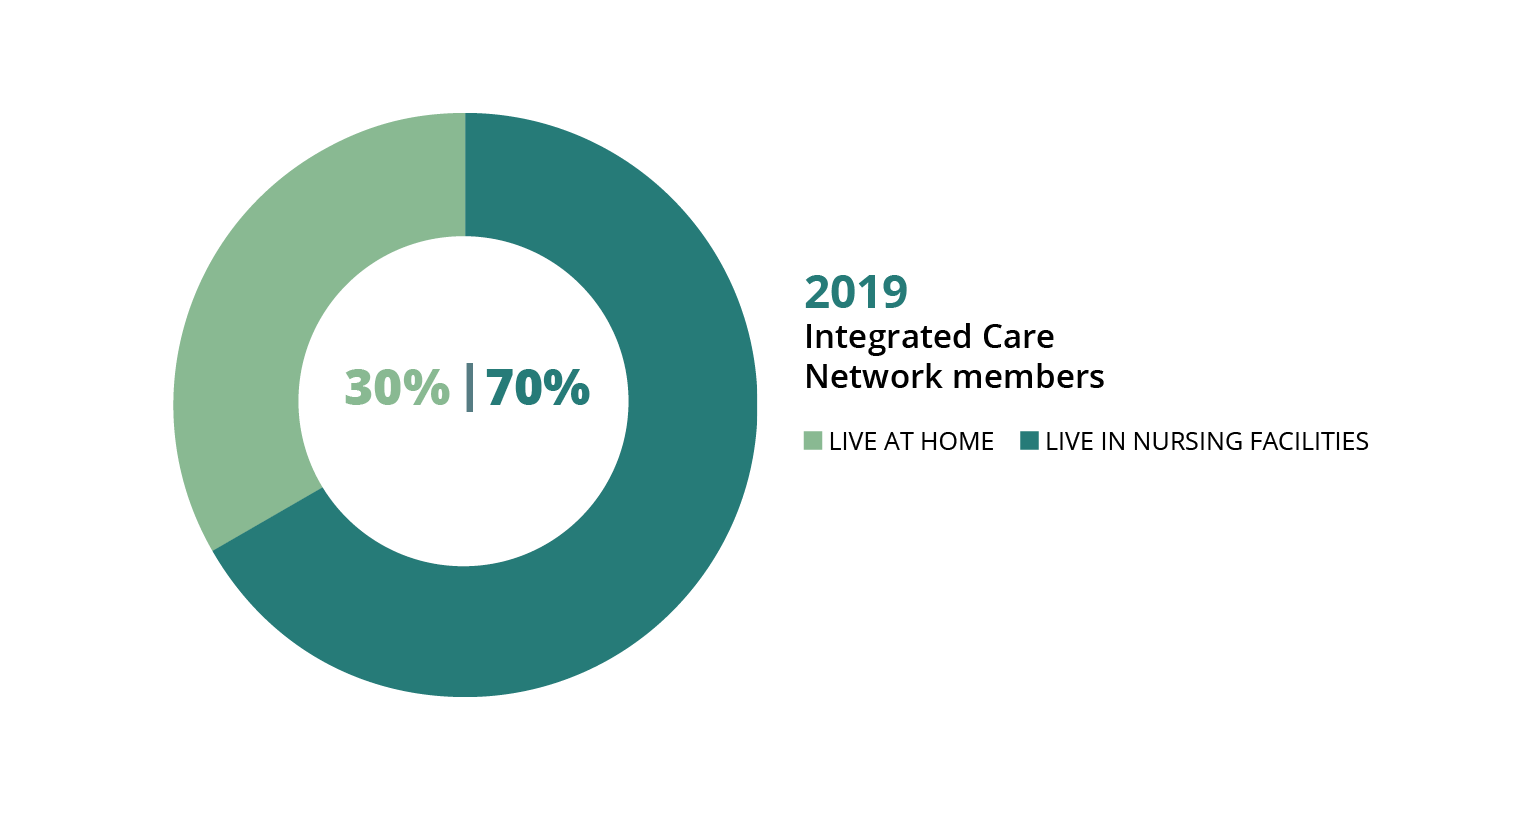 A circle graph showing that 70% of Integrated Care Network members lived in a nursing facility in 2019 while 30% lived at home.